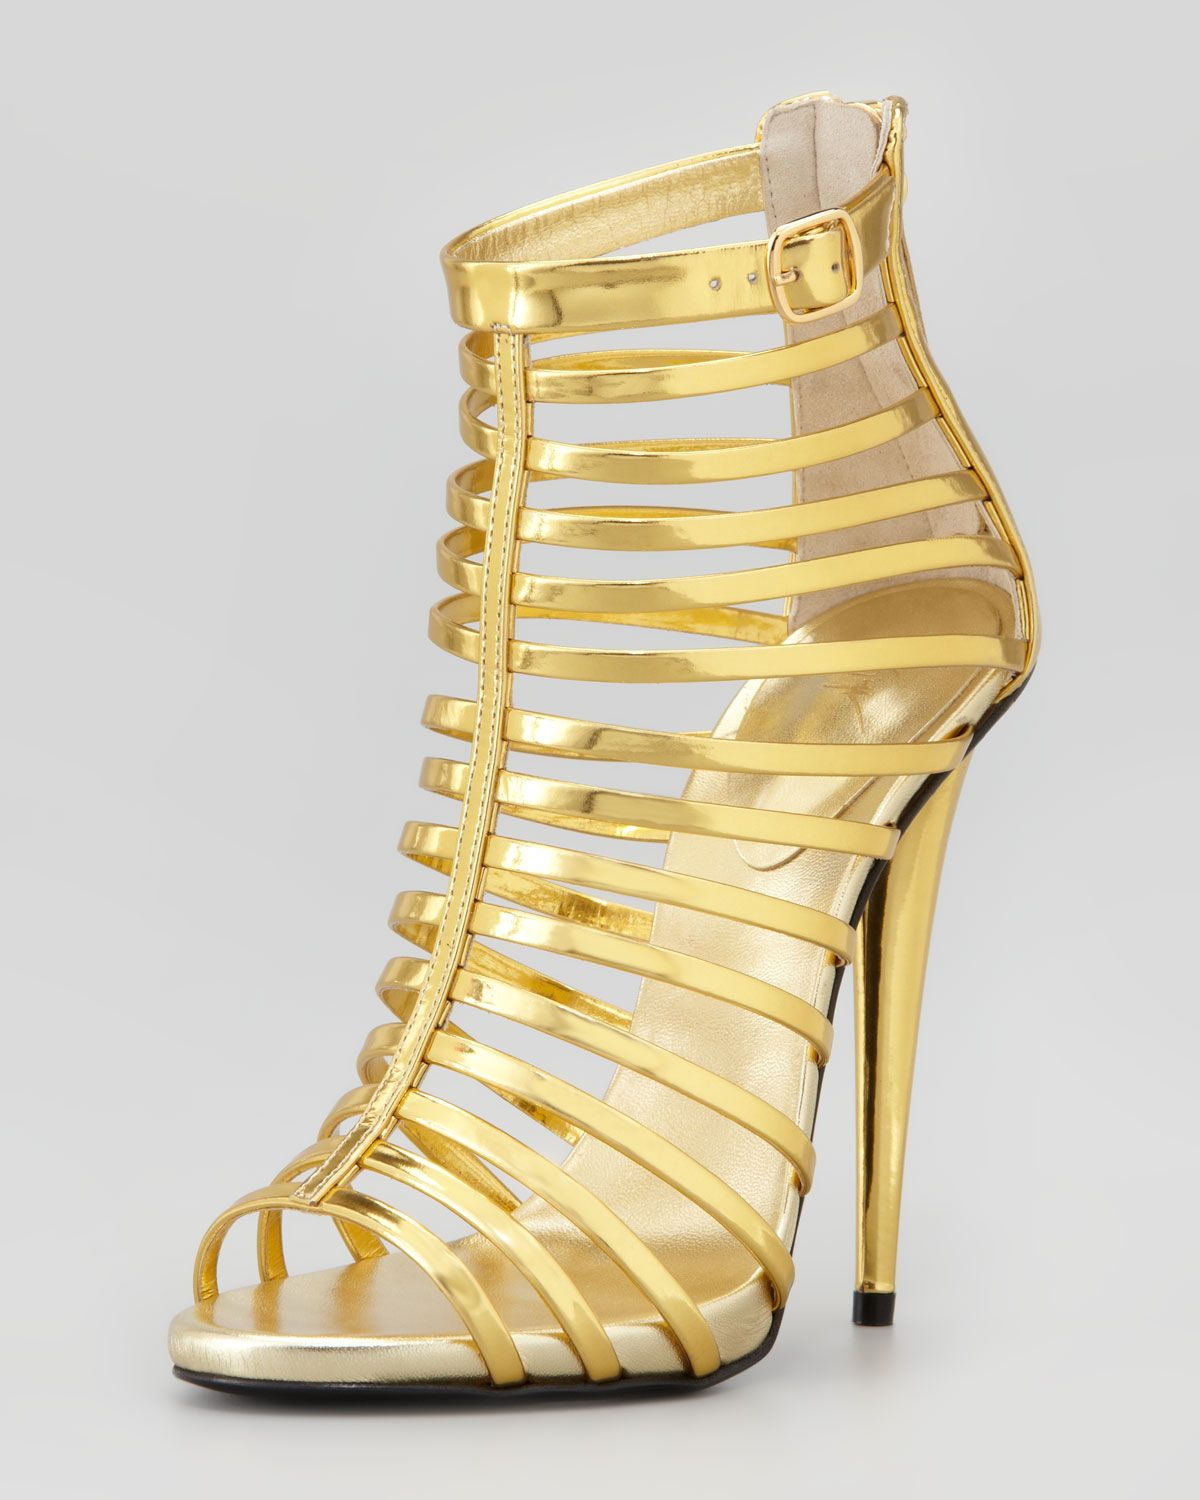 Designer Gold High Heel Gladiator Sandals | Shoes | Pinterest ...